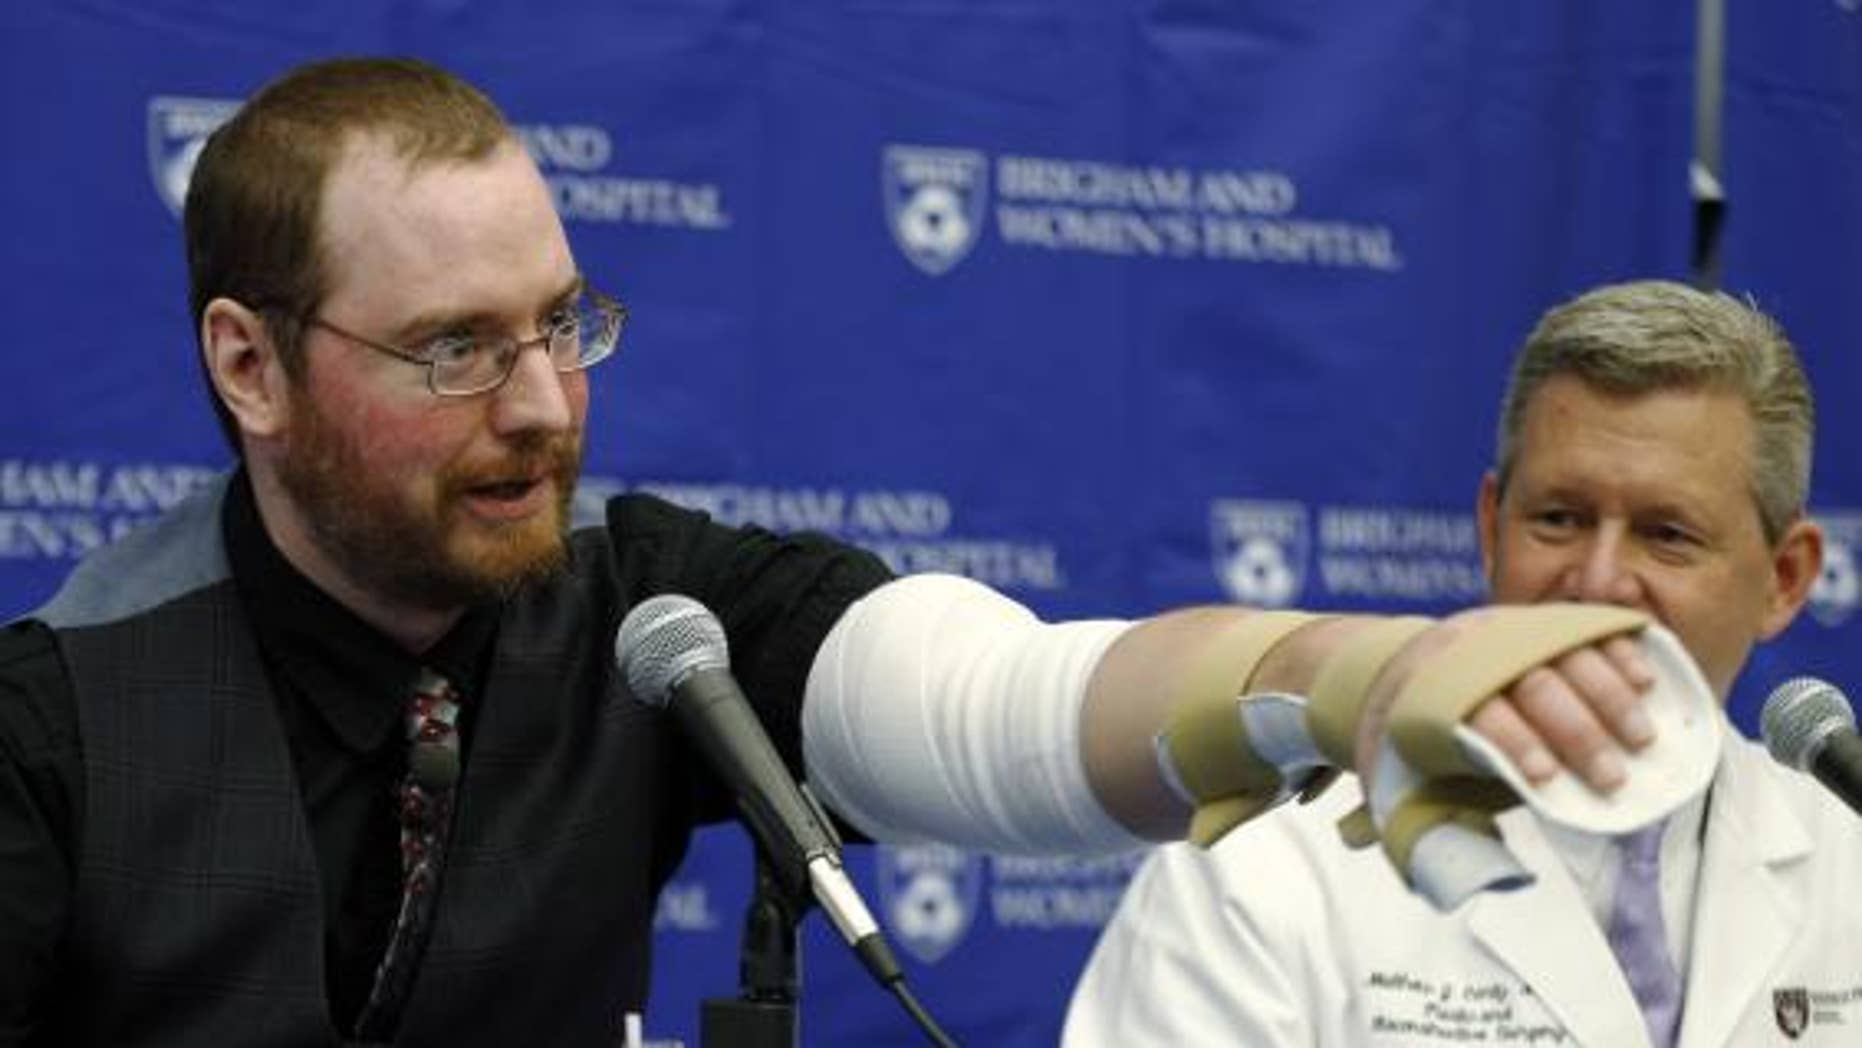 Nov. 25, 2014: Will Lautzenheiser (L) demonstrates some of the motion in his left arm as Dr. Matthew Carty, a member of his transplant team, looks on at a news conference to announce Lautzenheiser's successful double arm transplant at Brigham and Women's Hospital in Boston, Massachusetts.